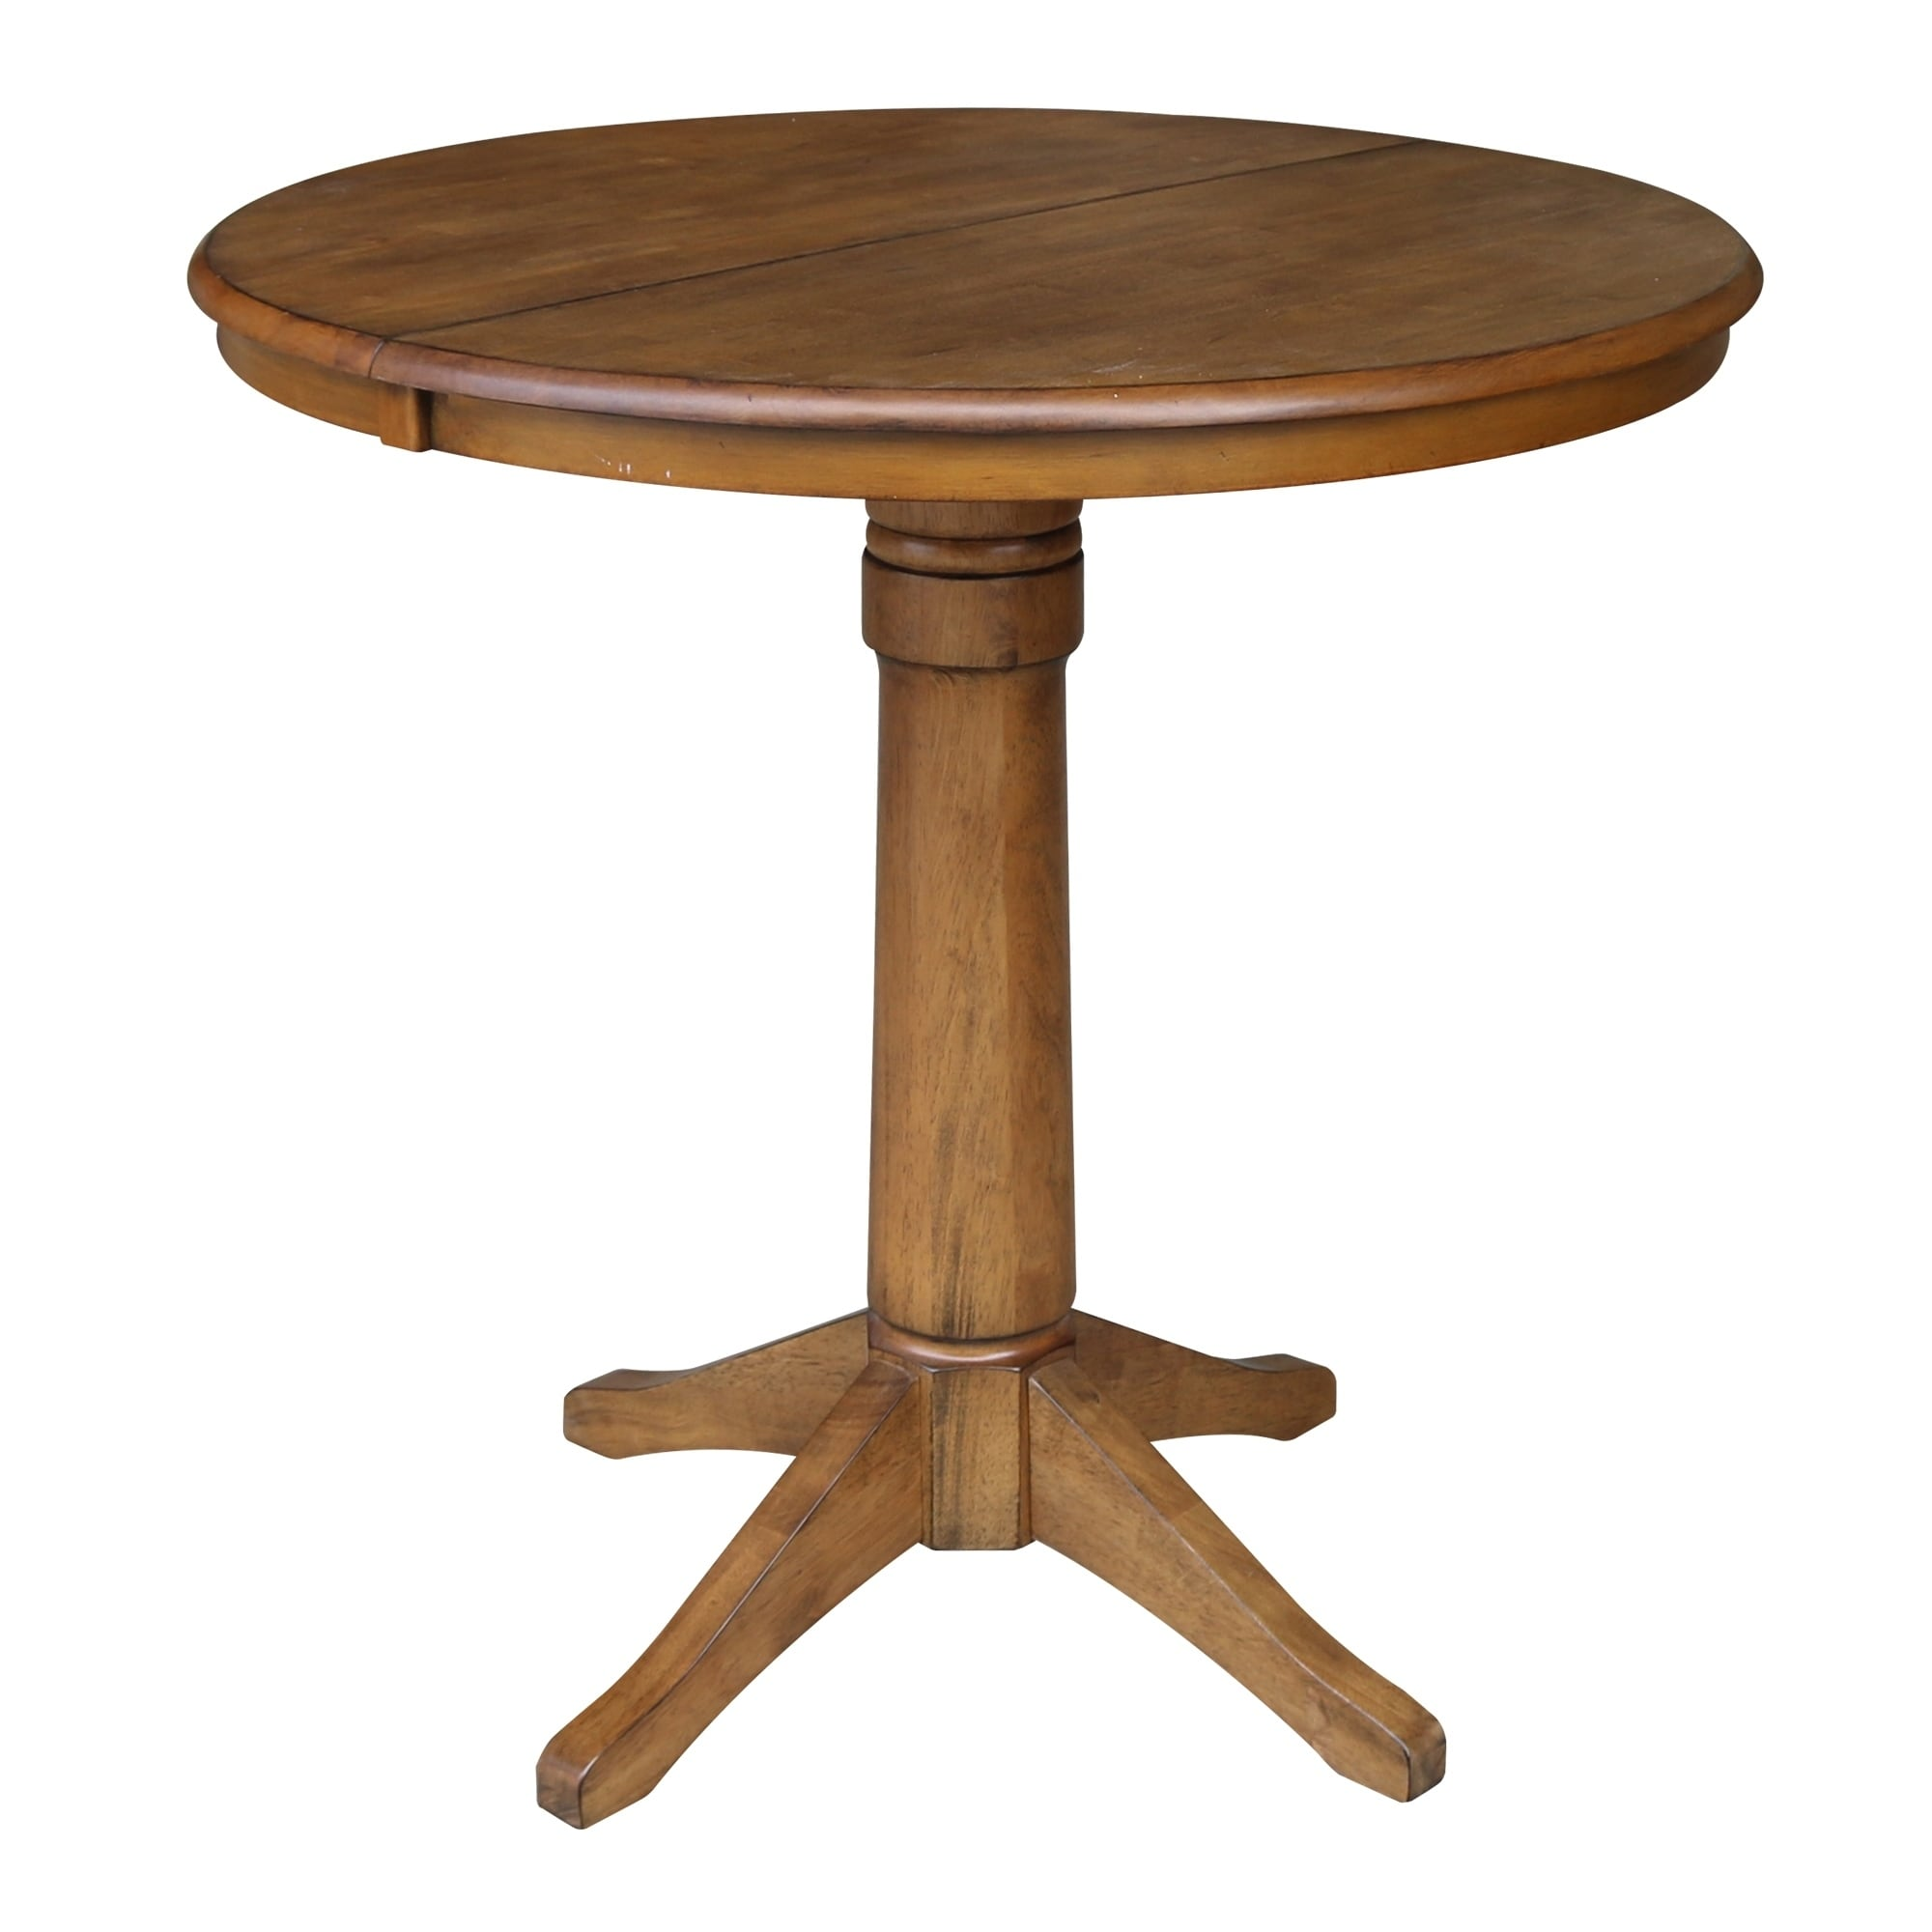 Shop 36 Round Pedestal Dining Table With 12 Leaf Pecan On Sale